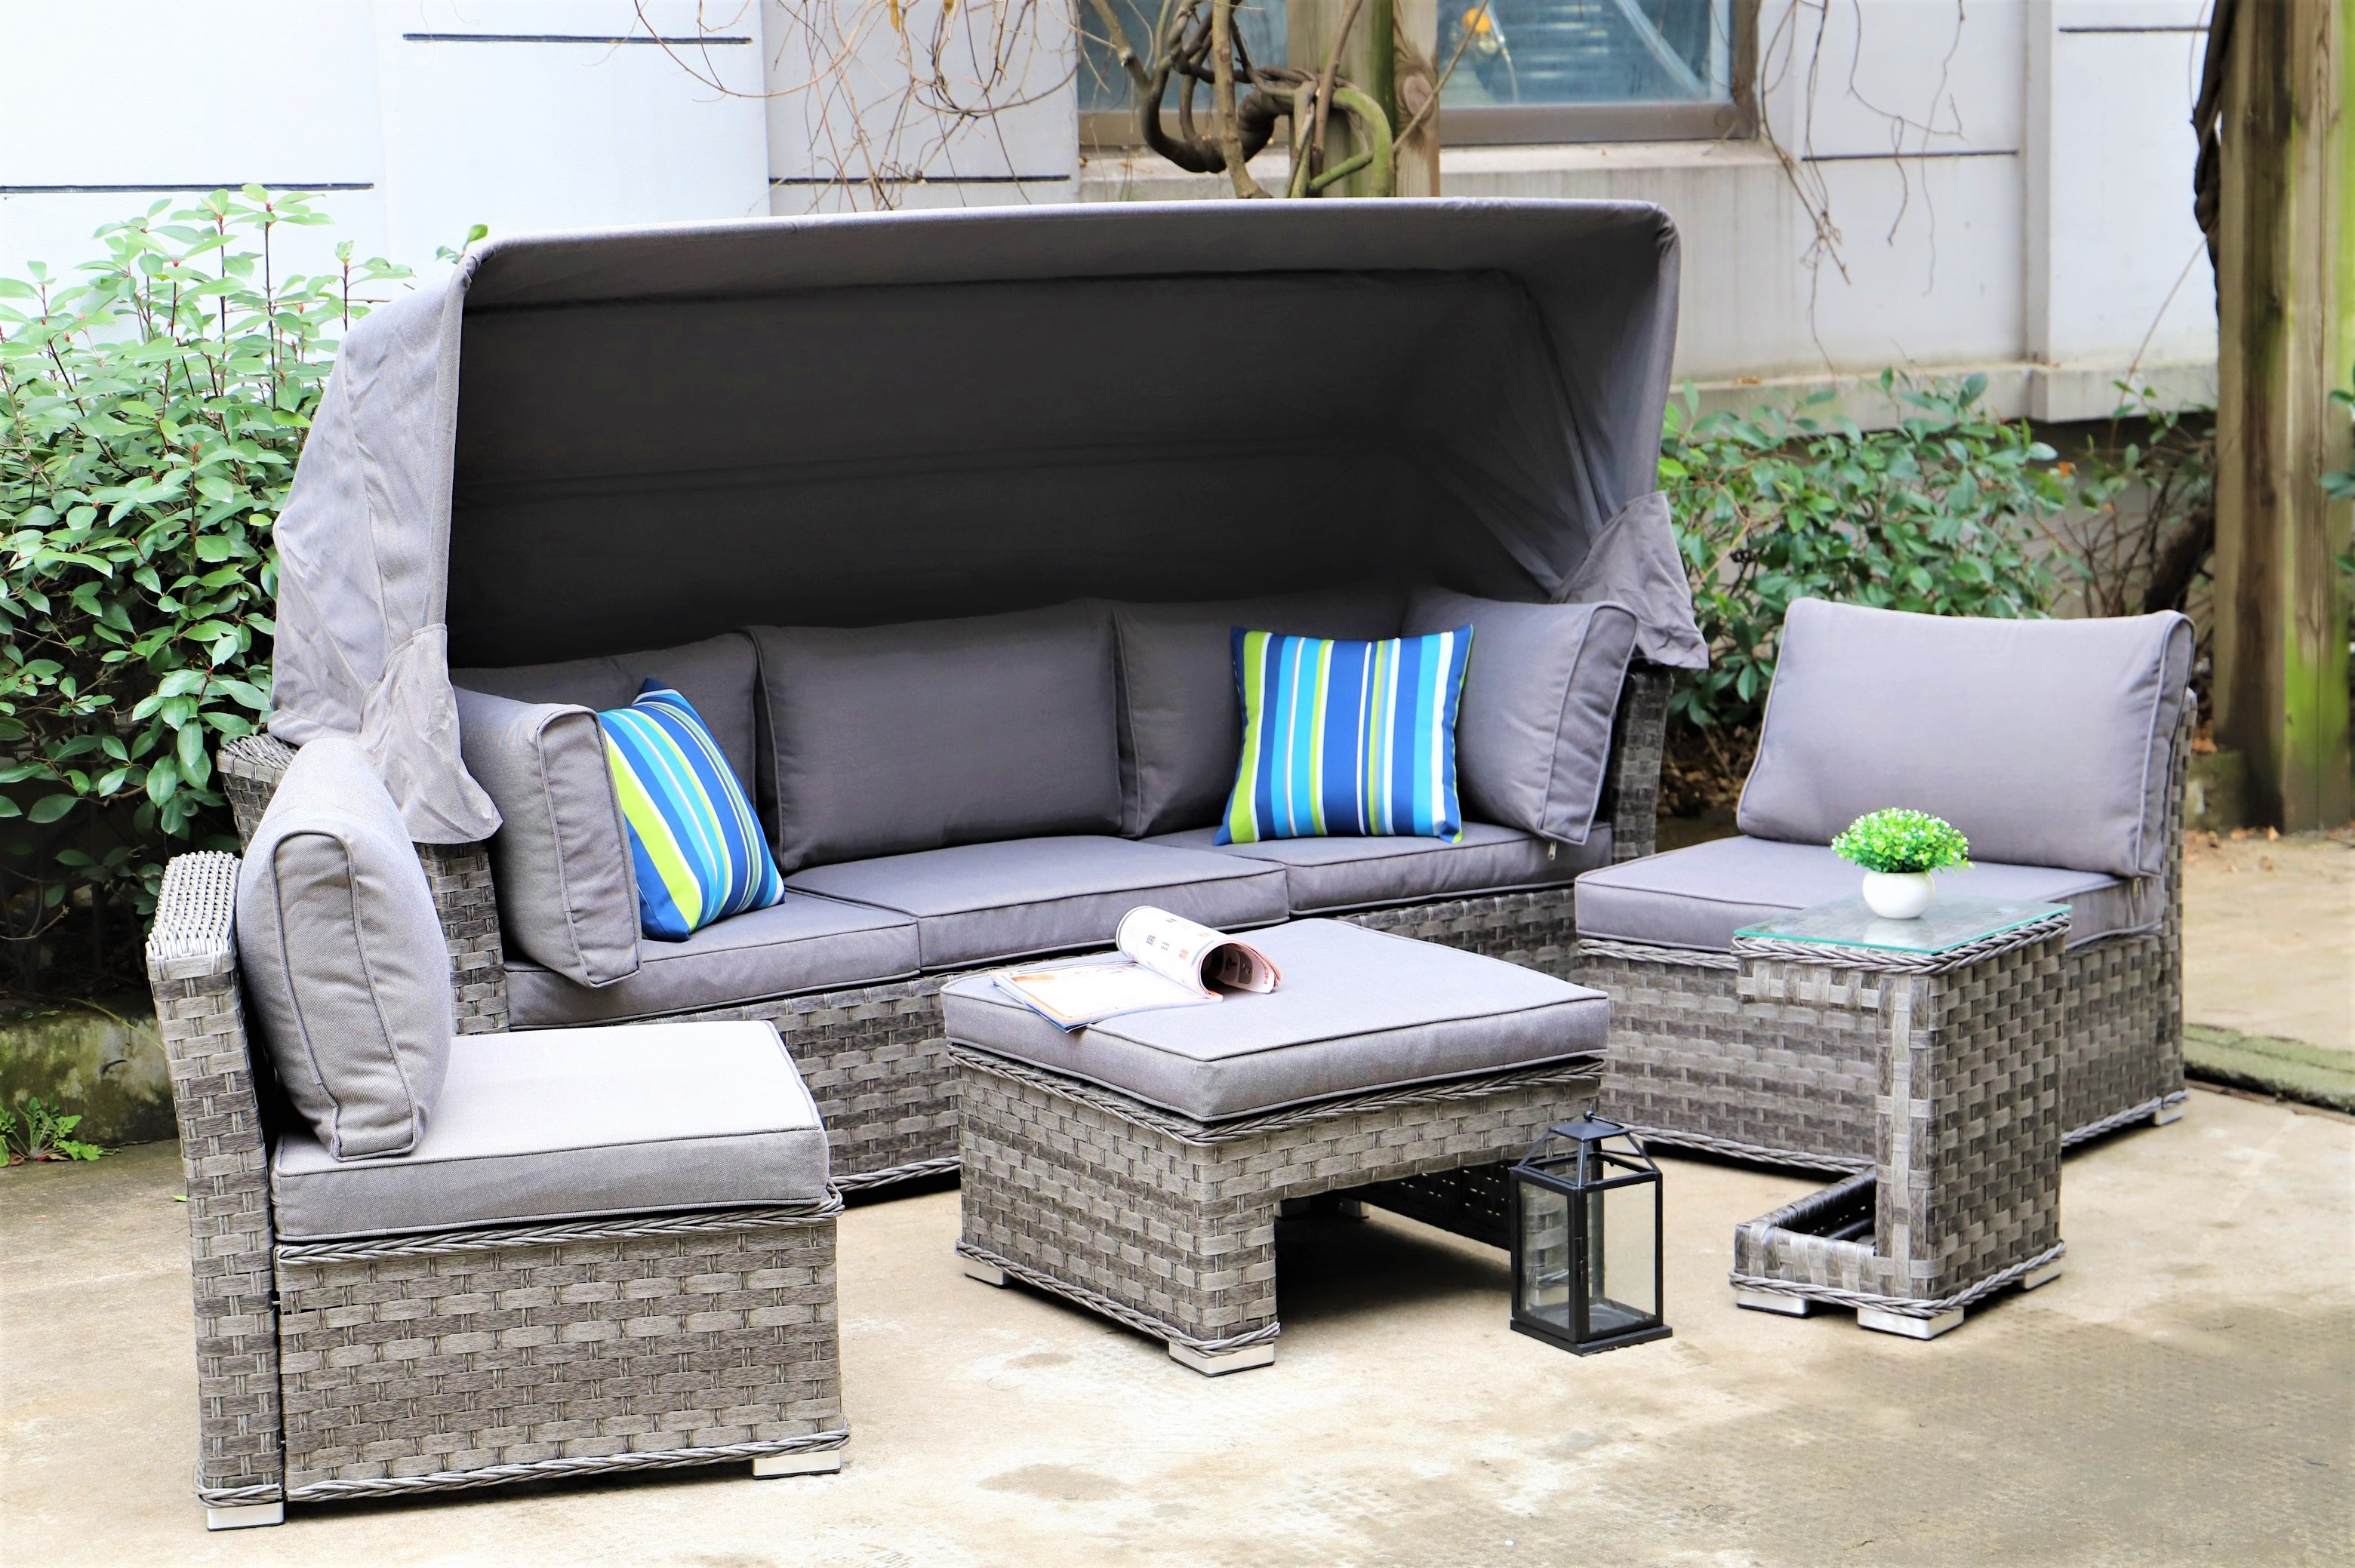 Serena Sapphire Canopy Sofa Set with Footstool and Side Table